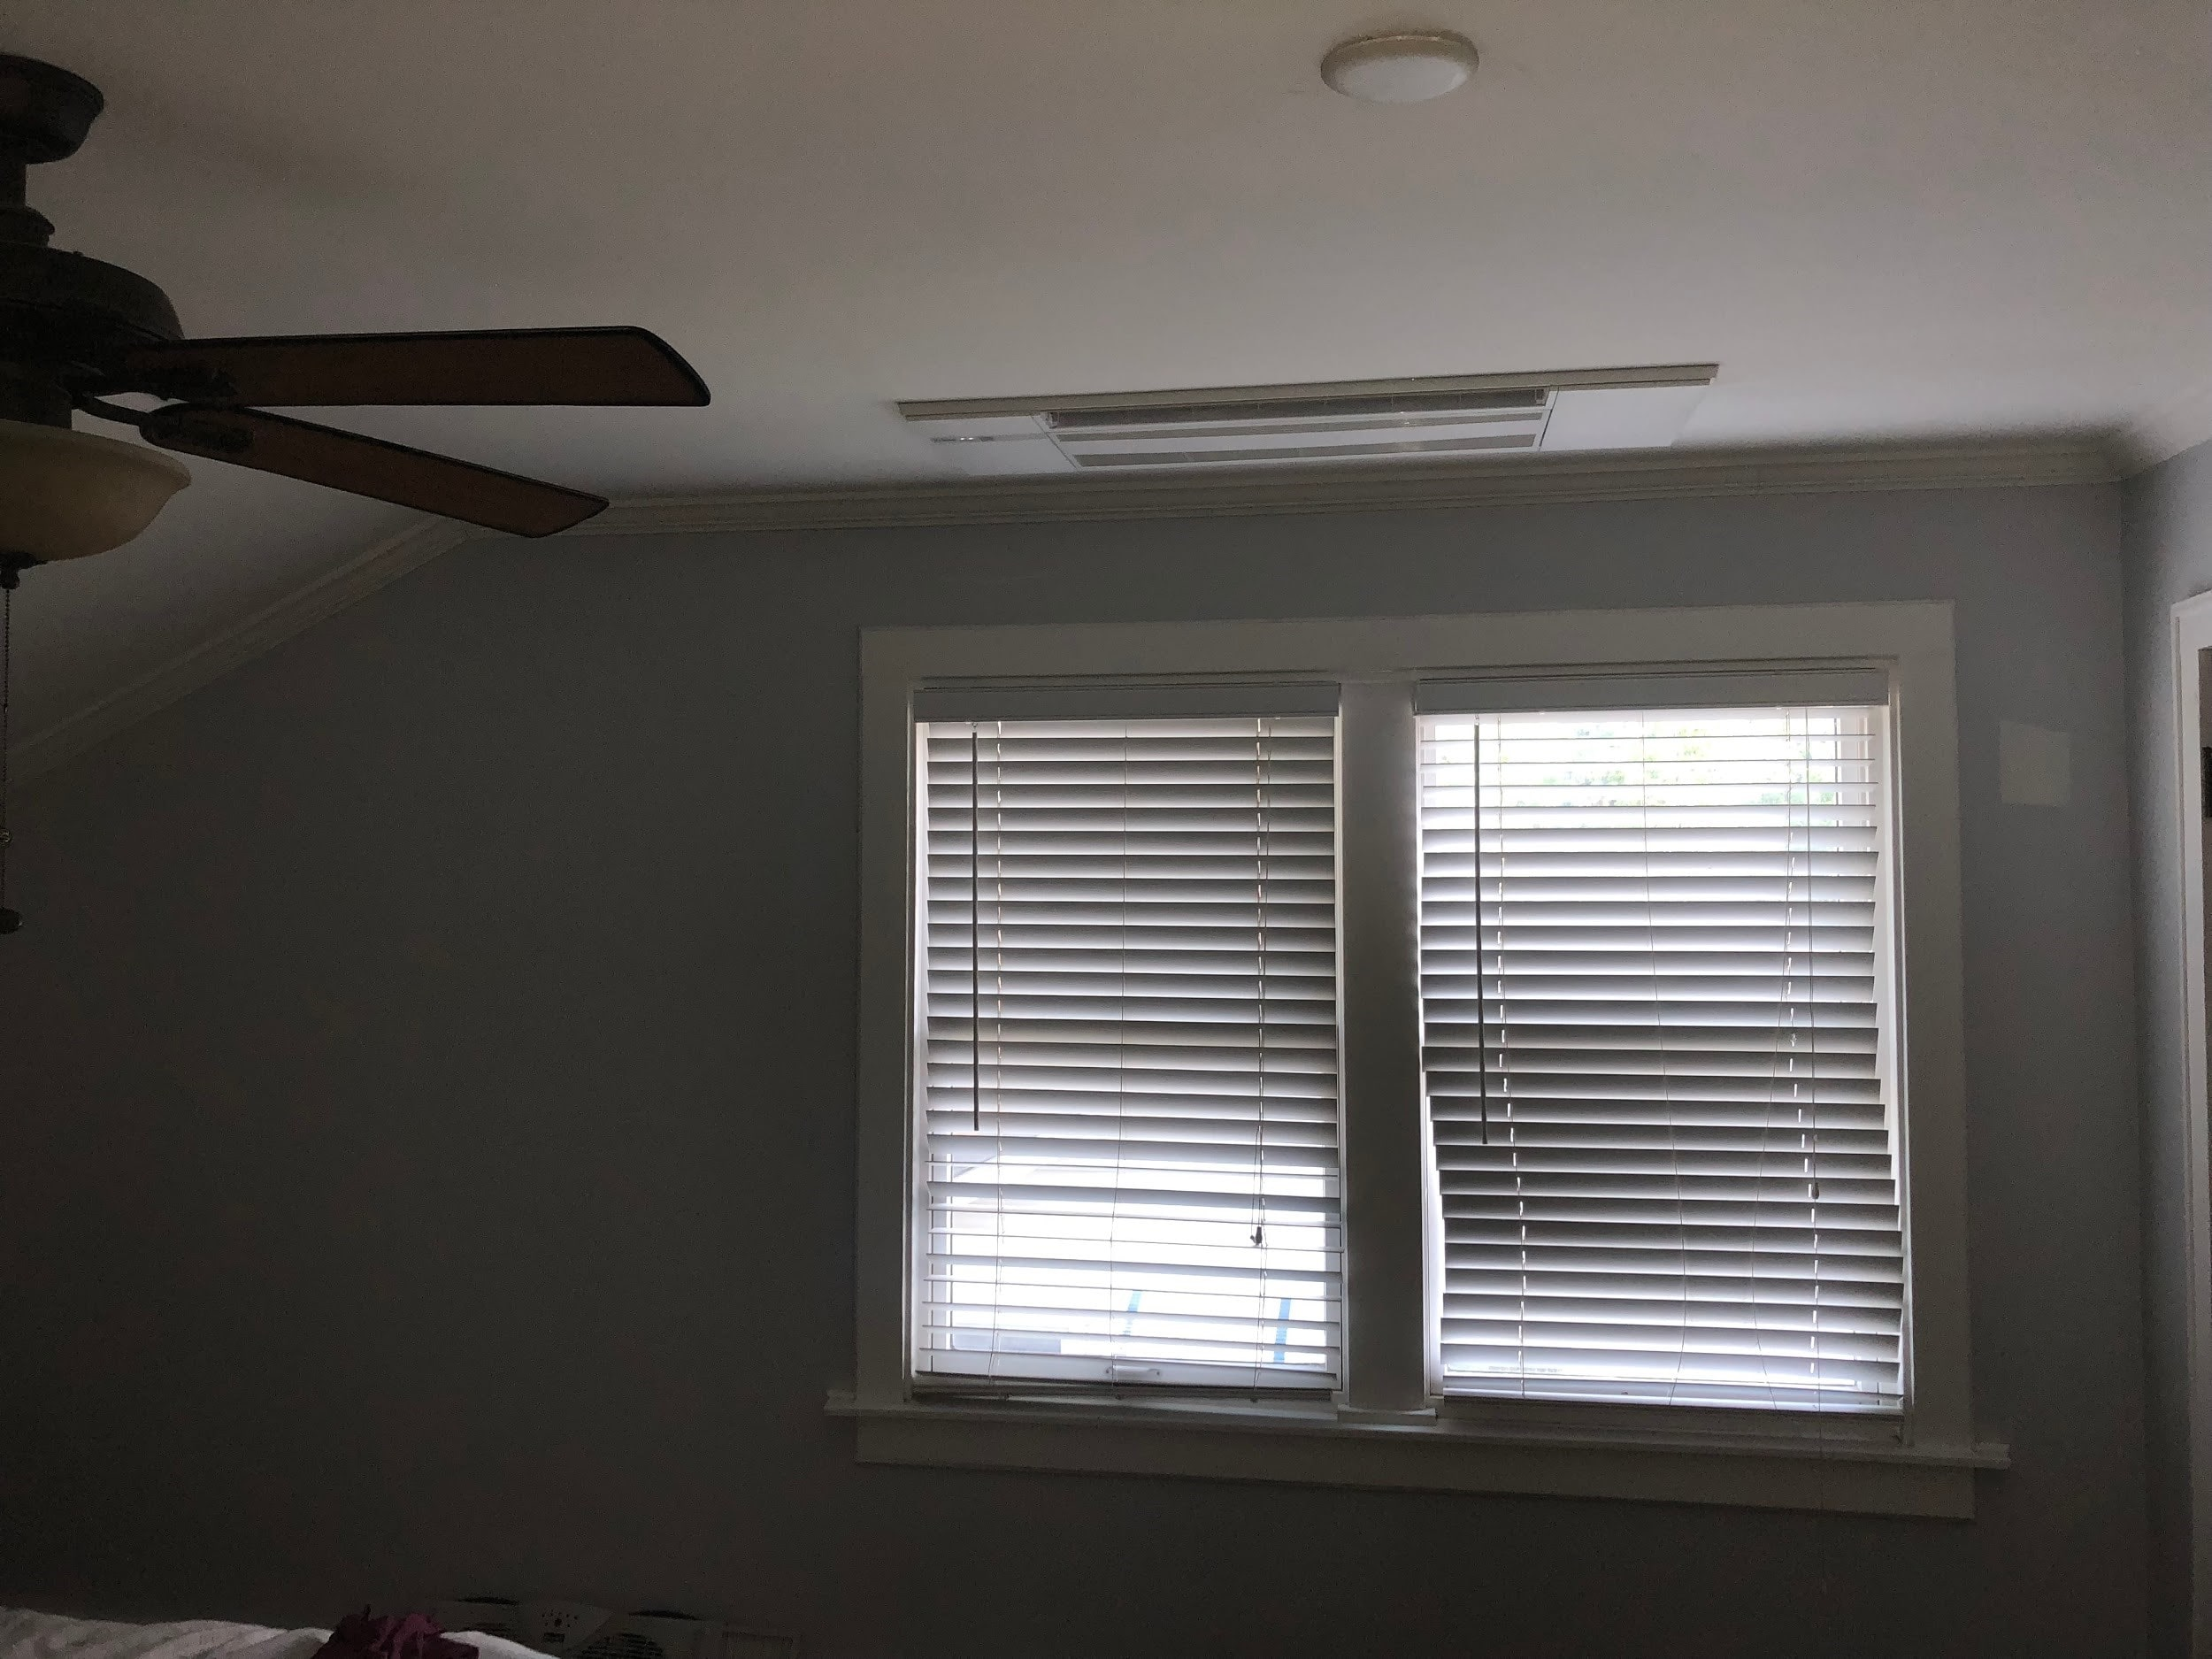 Ductless ceiling cassette in a Mt. Prospect, IL bungalow master bedroom